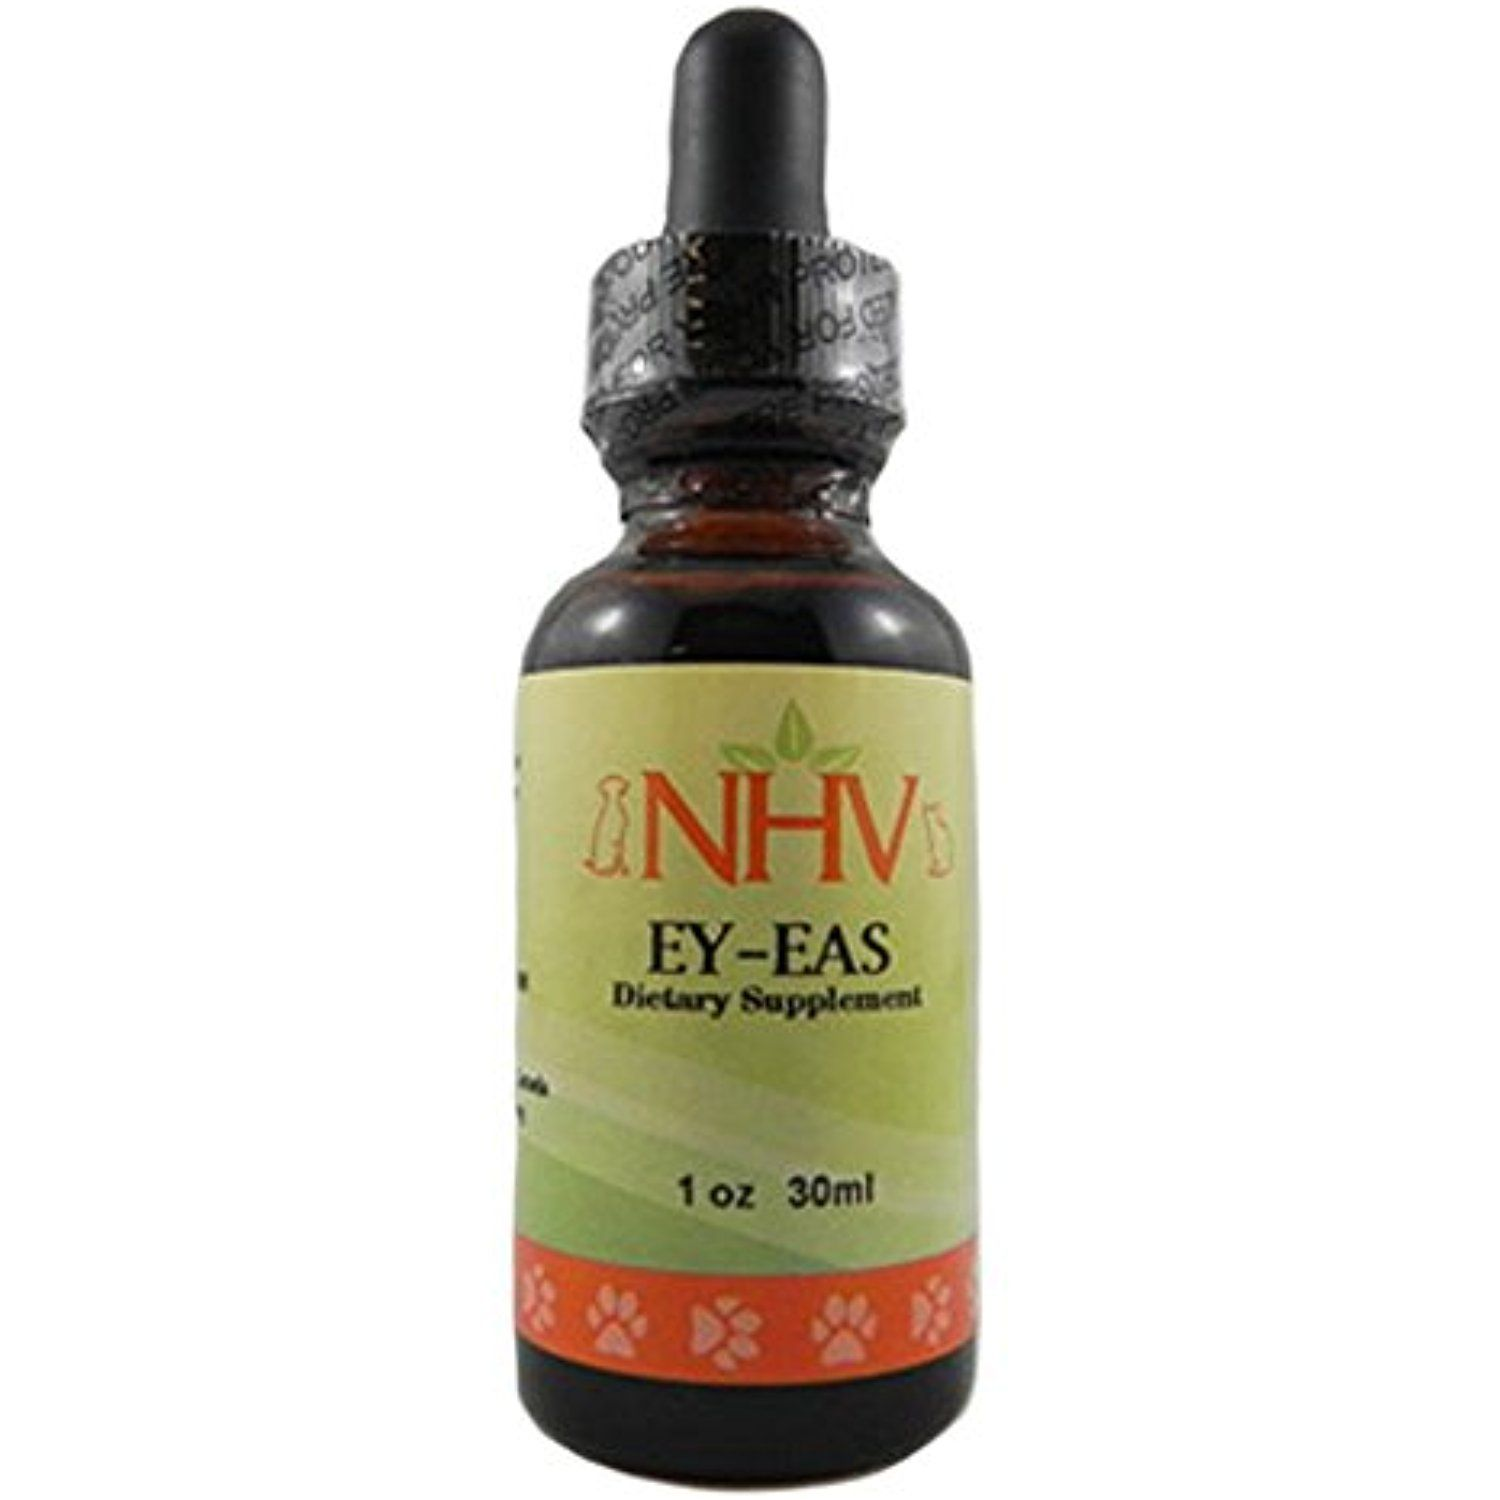 Nhv Ey Eas Natural Eye Drops For Dogs Cats Pets Helps With Conjunctivitis Pink Eye Or Eye Injury In Dogs And C Eye Drops For Dogs Pink Eyes Natural Eyes